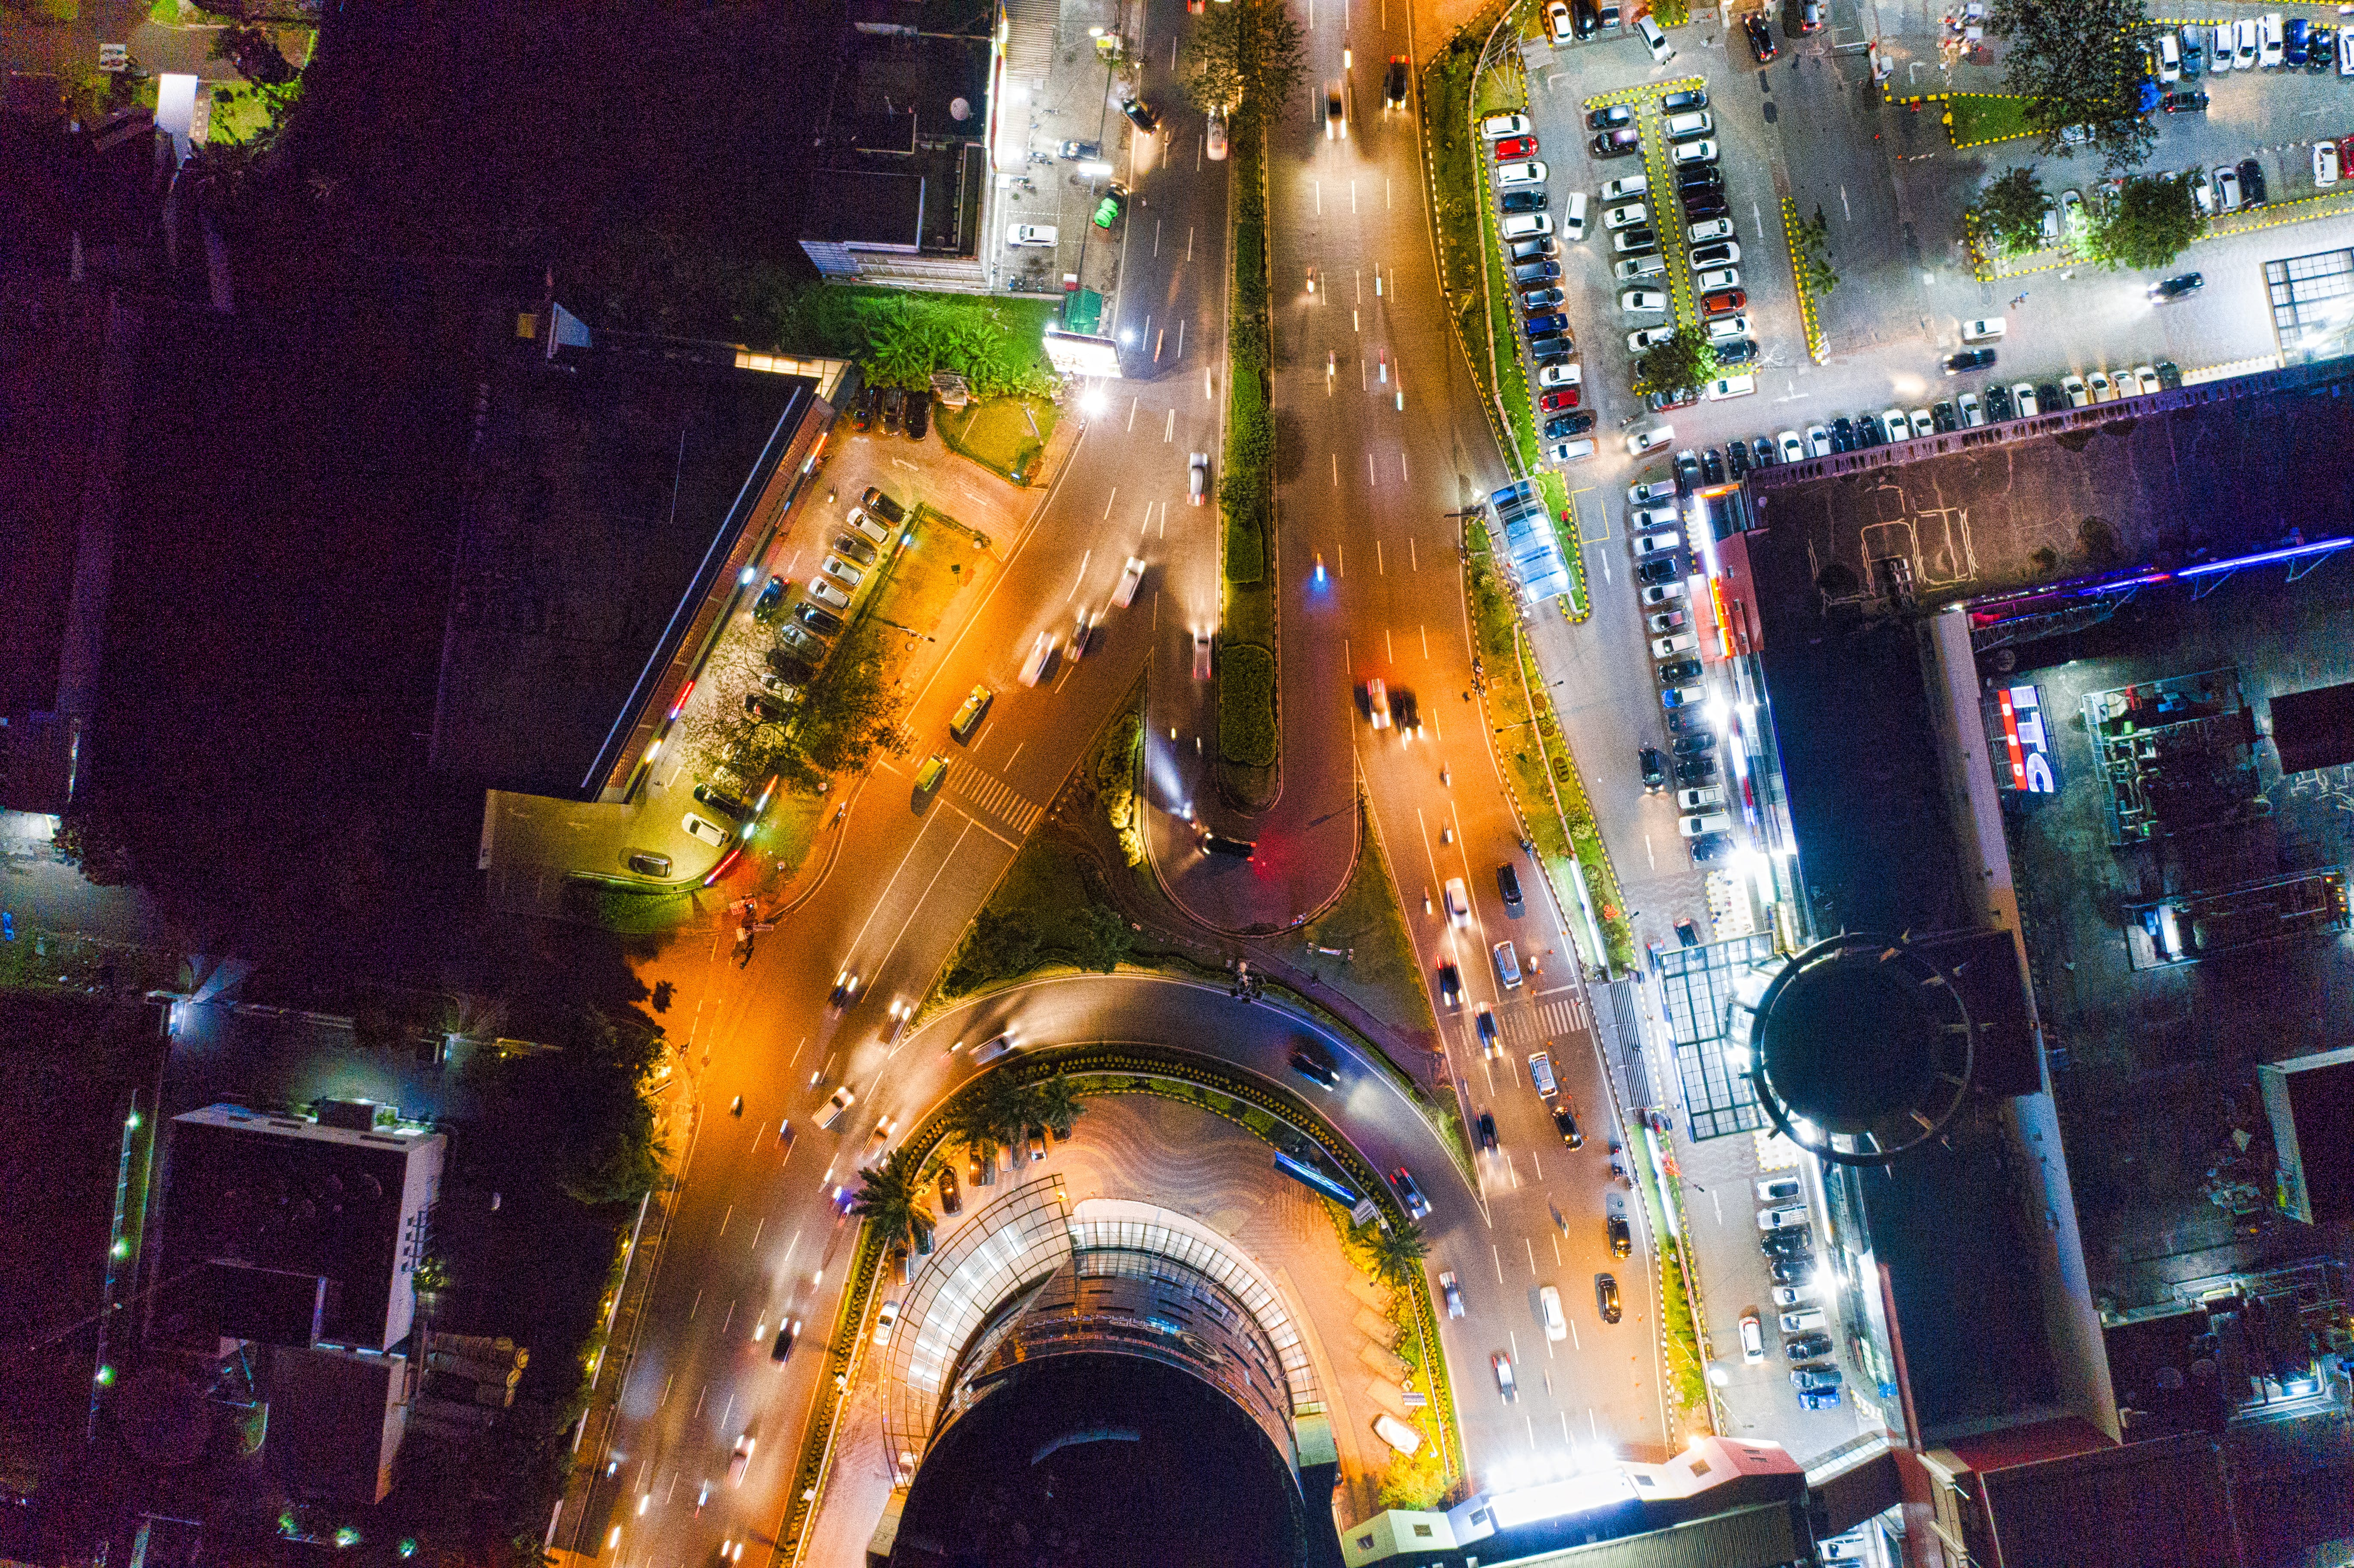 Aerial View of Vehicles on Road at Night